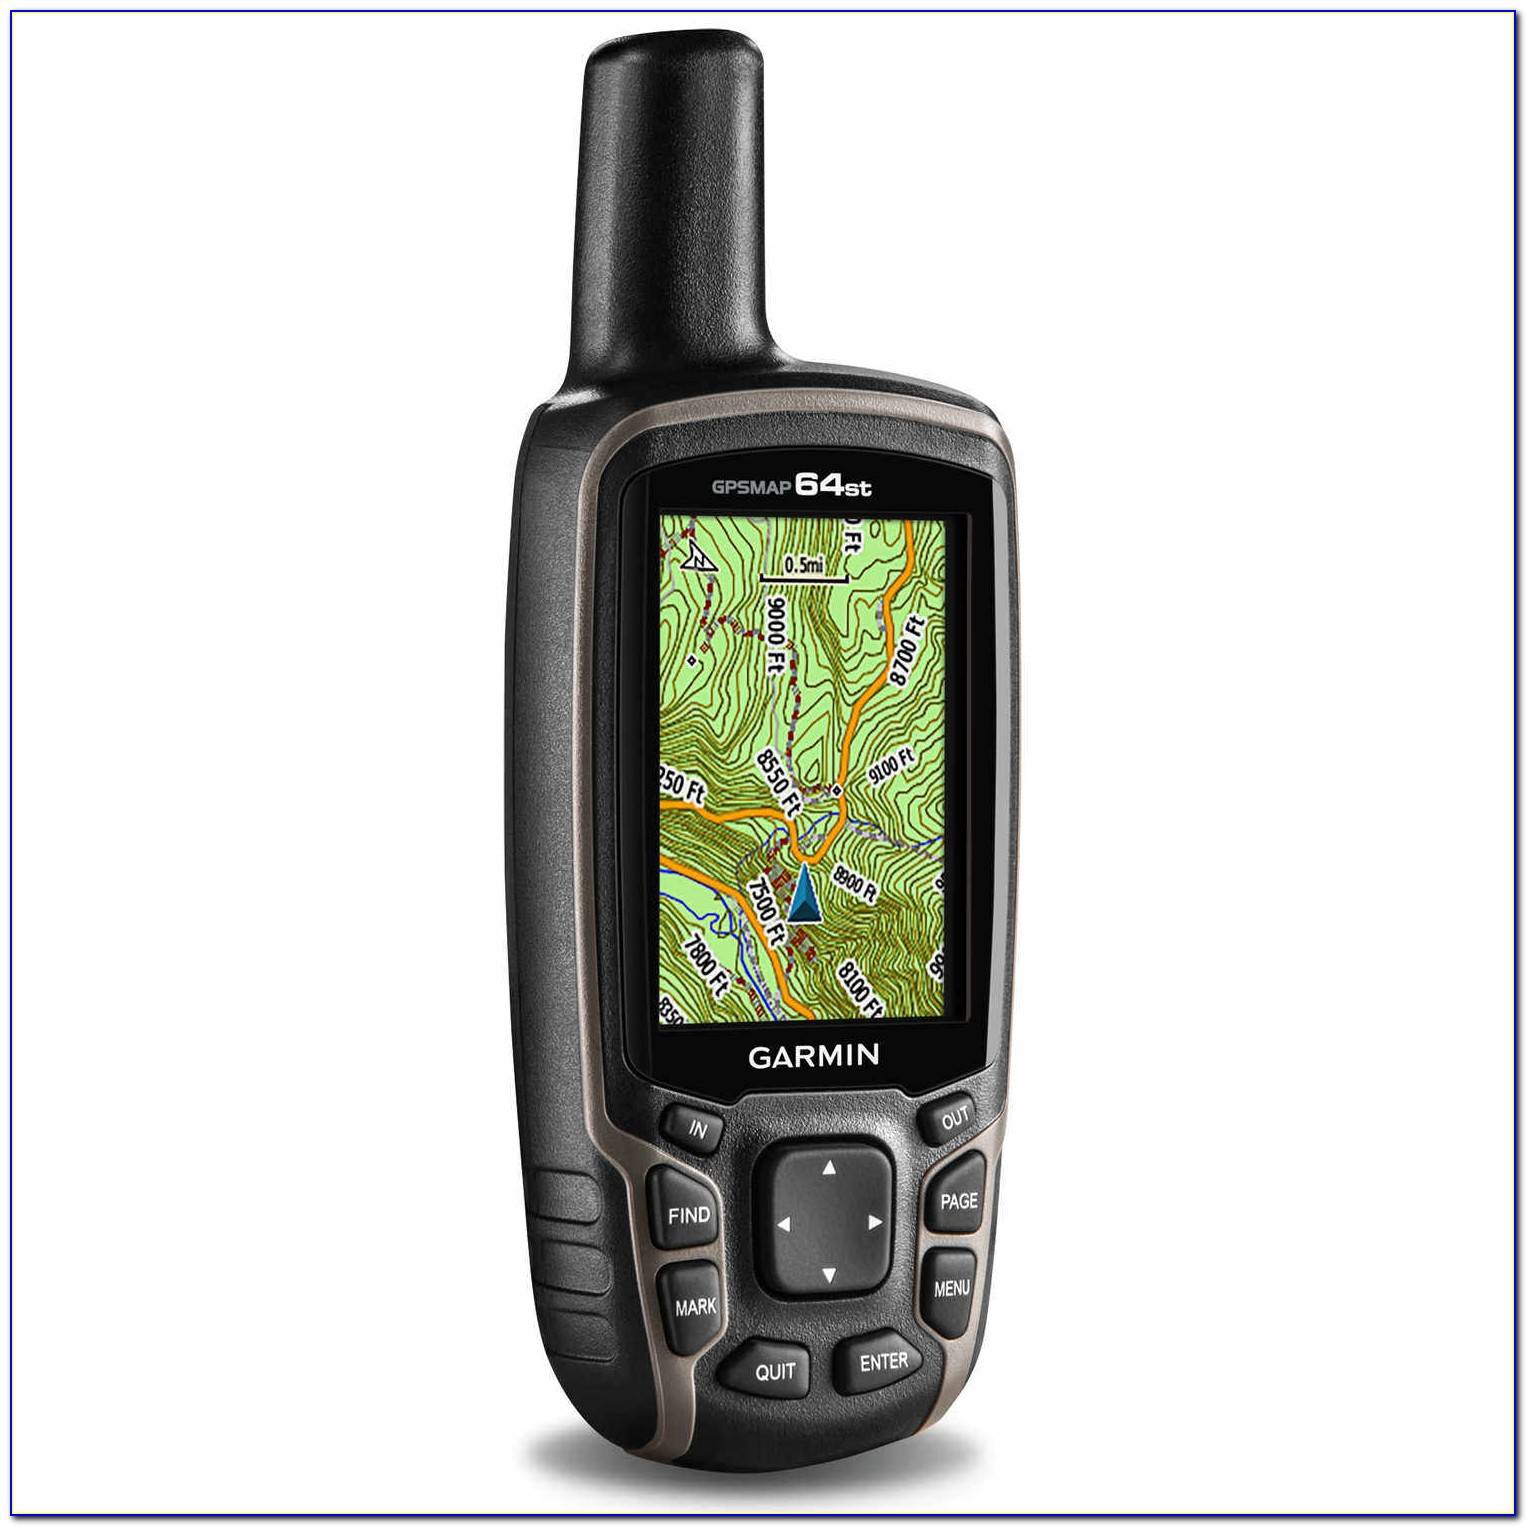 Garmin 64st Maps Do Not Have Routable Roads